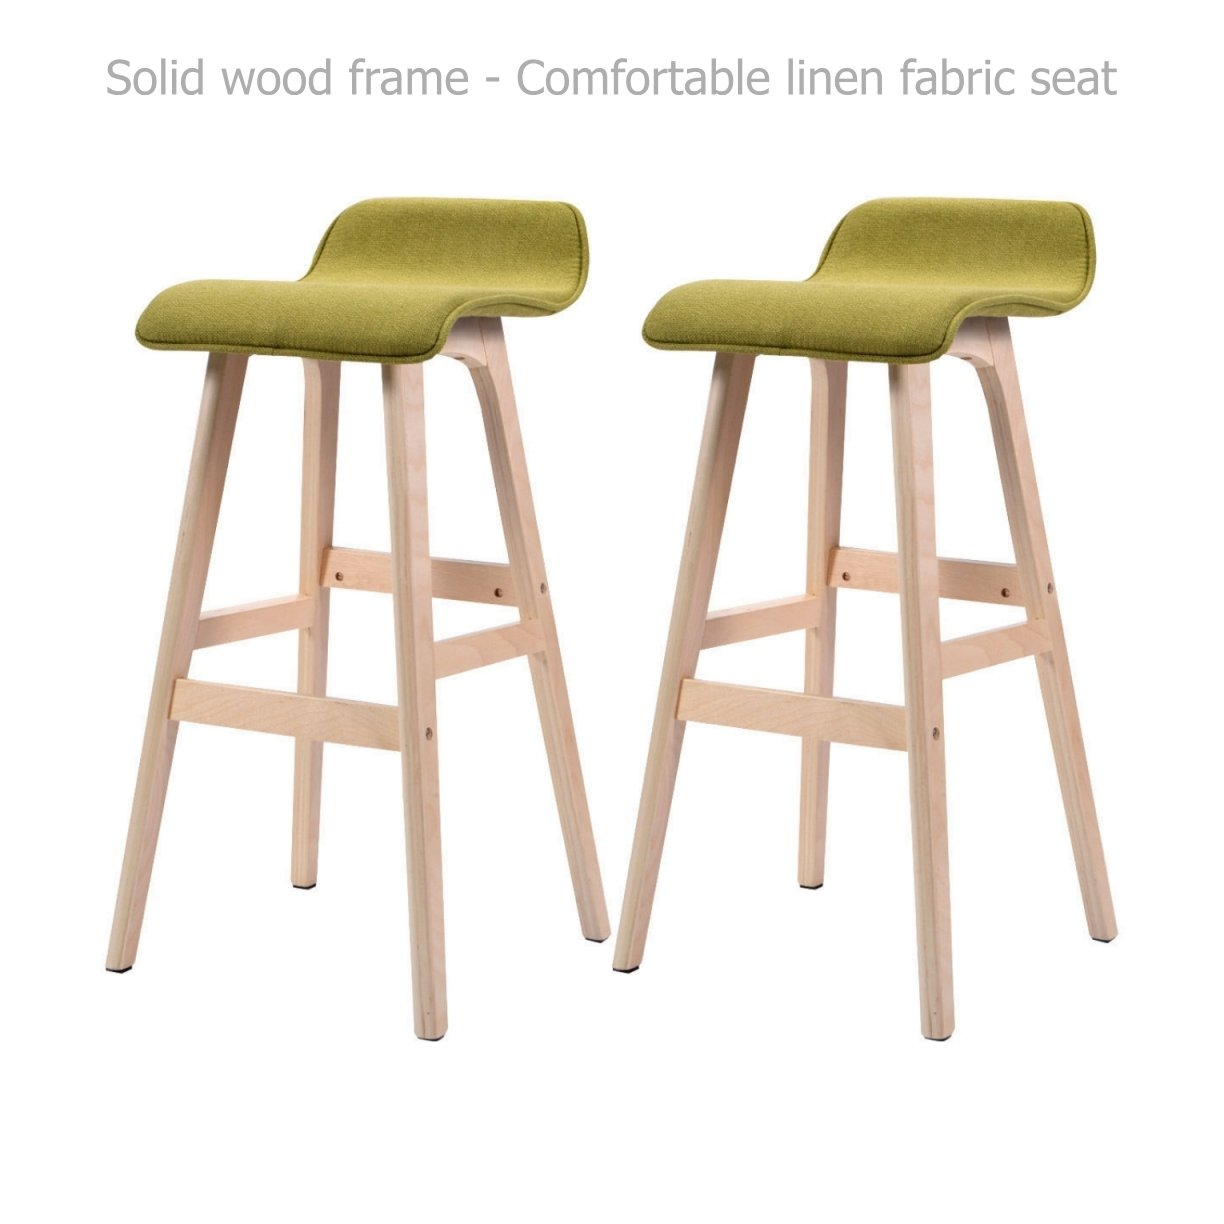 Modern Classic Bentwood Bar Stools Solid Wood Frame Unique Linen Fabrics Seat Counter Height Pub Kitchen Dining Chair - Set of 2 Green #1529